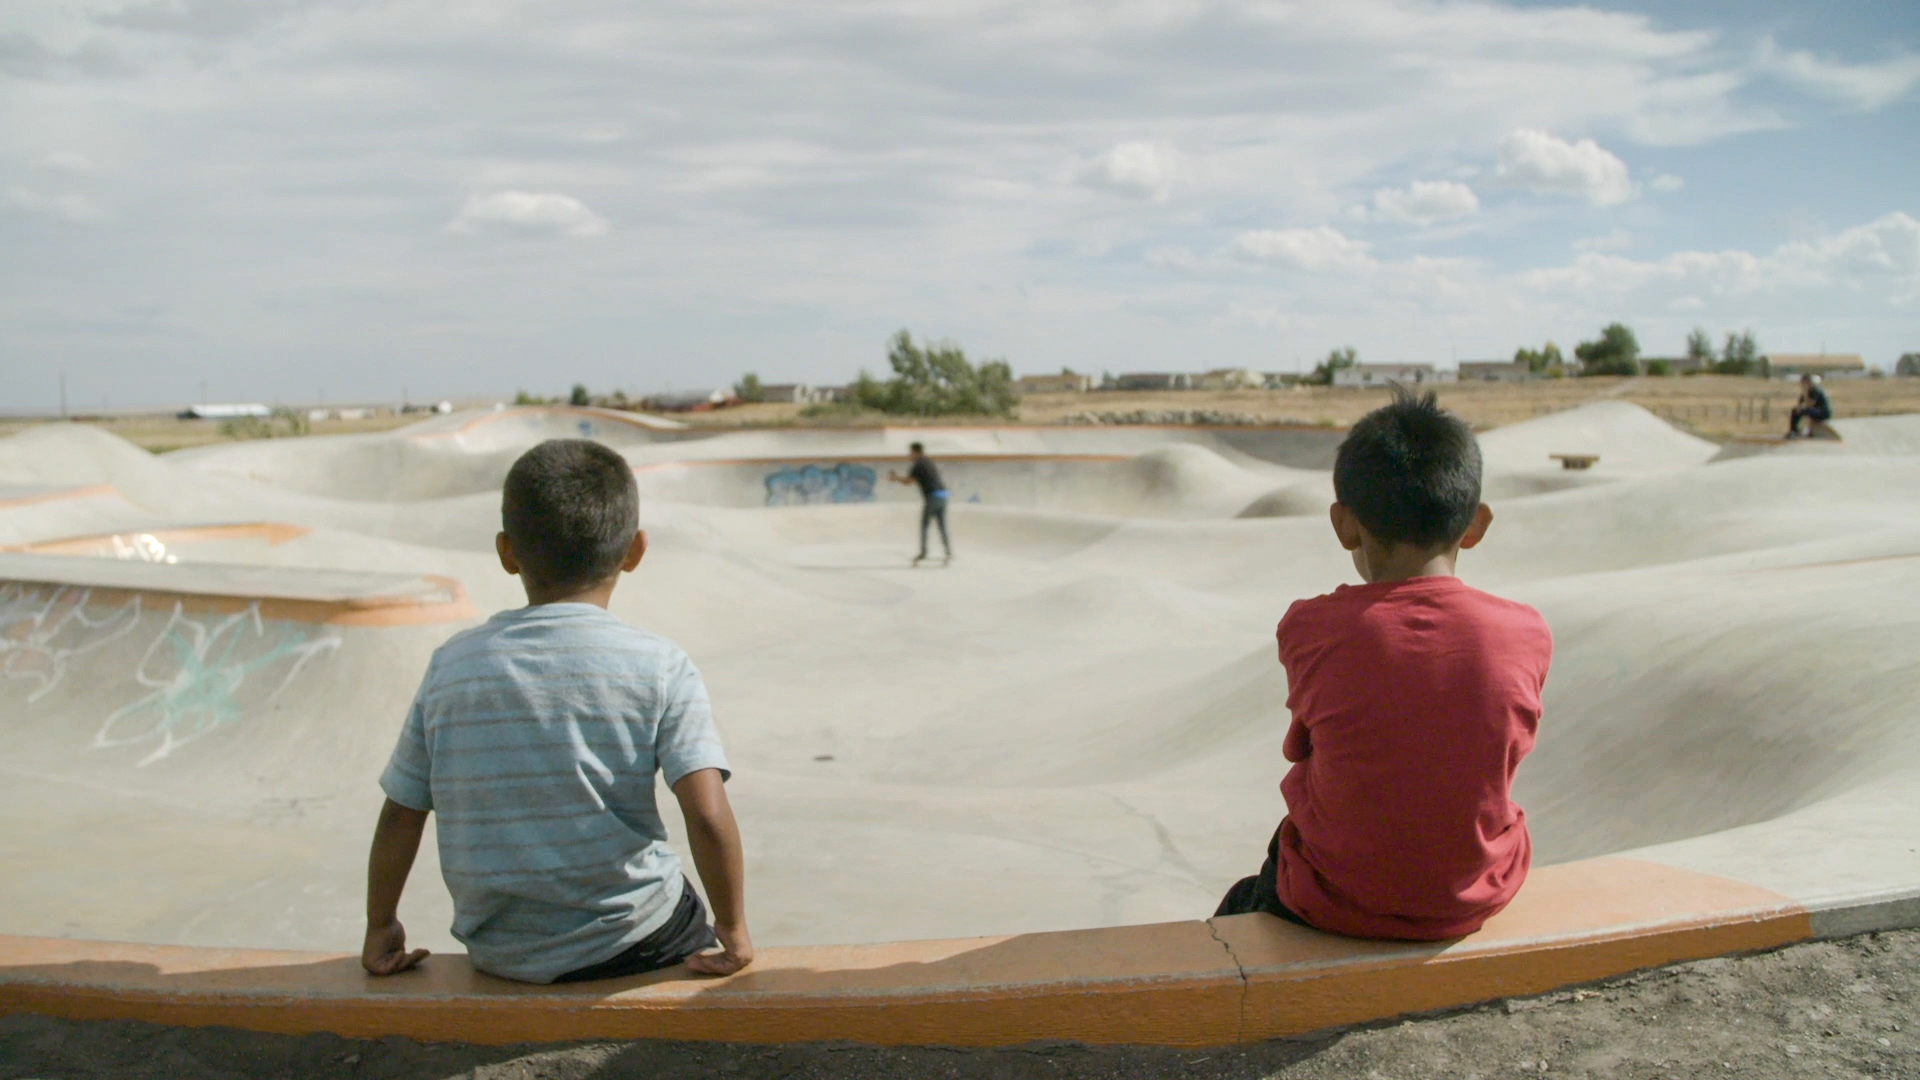 A skate park on the reservation in Browning, Montana.